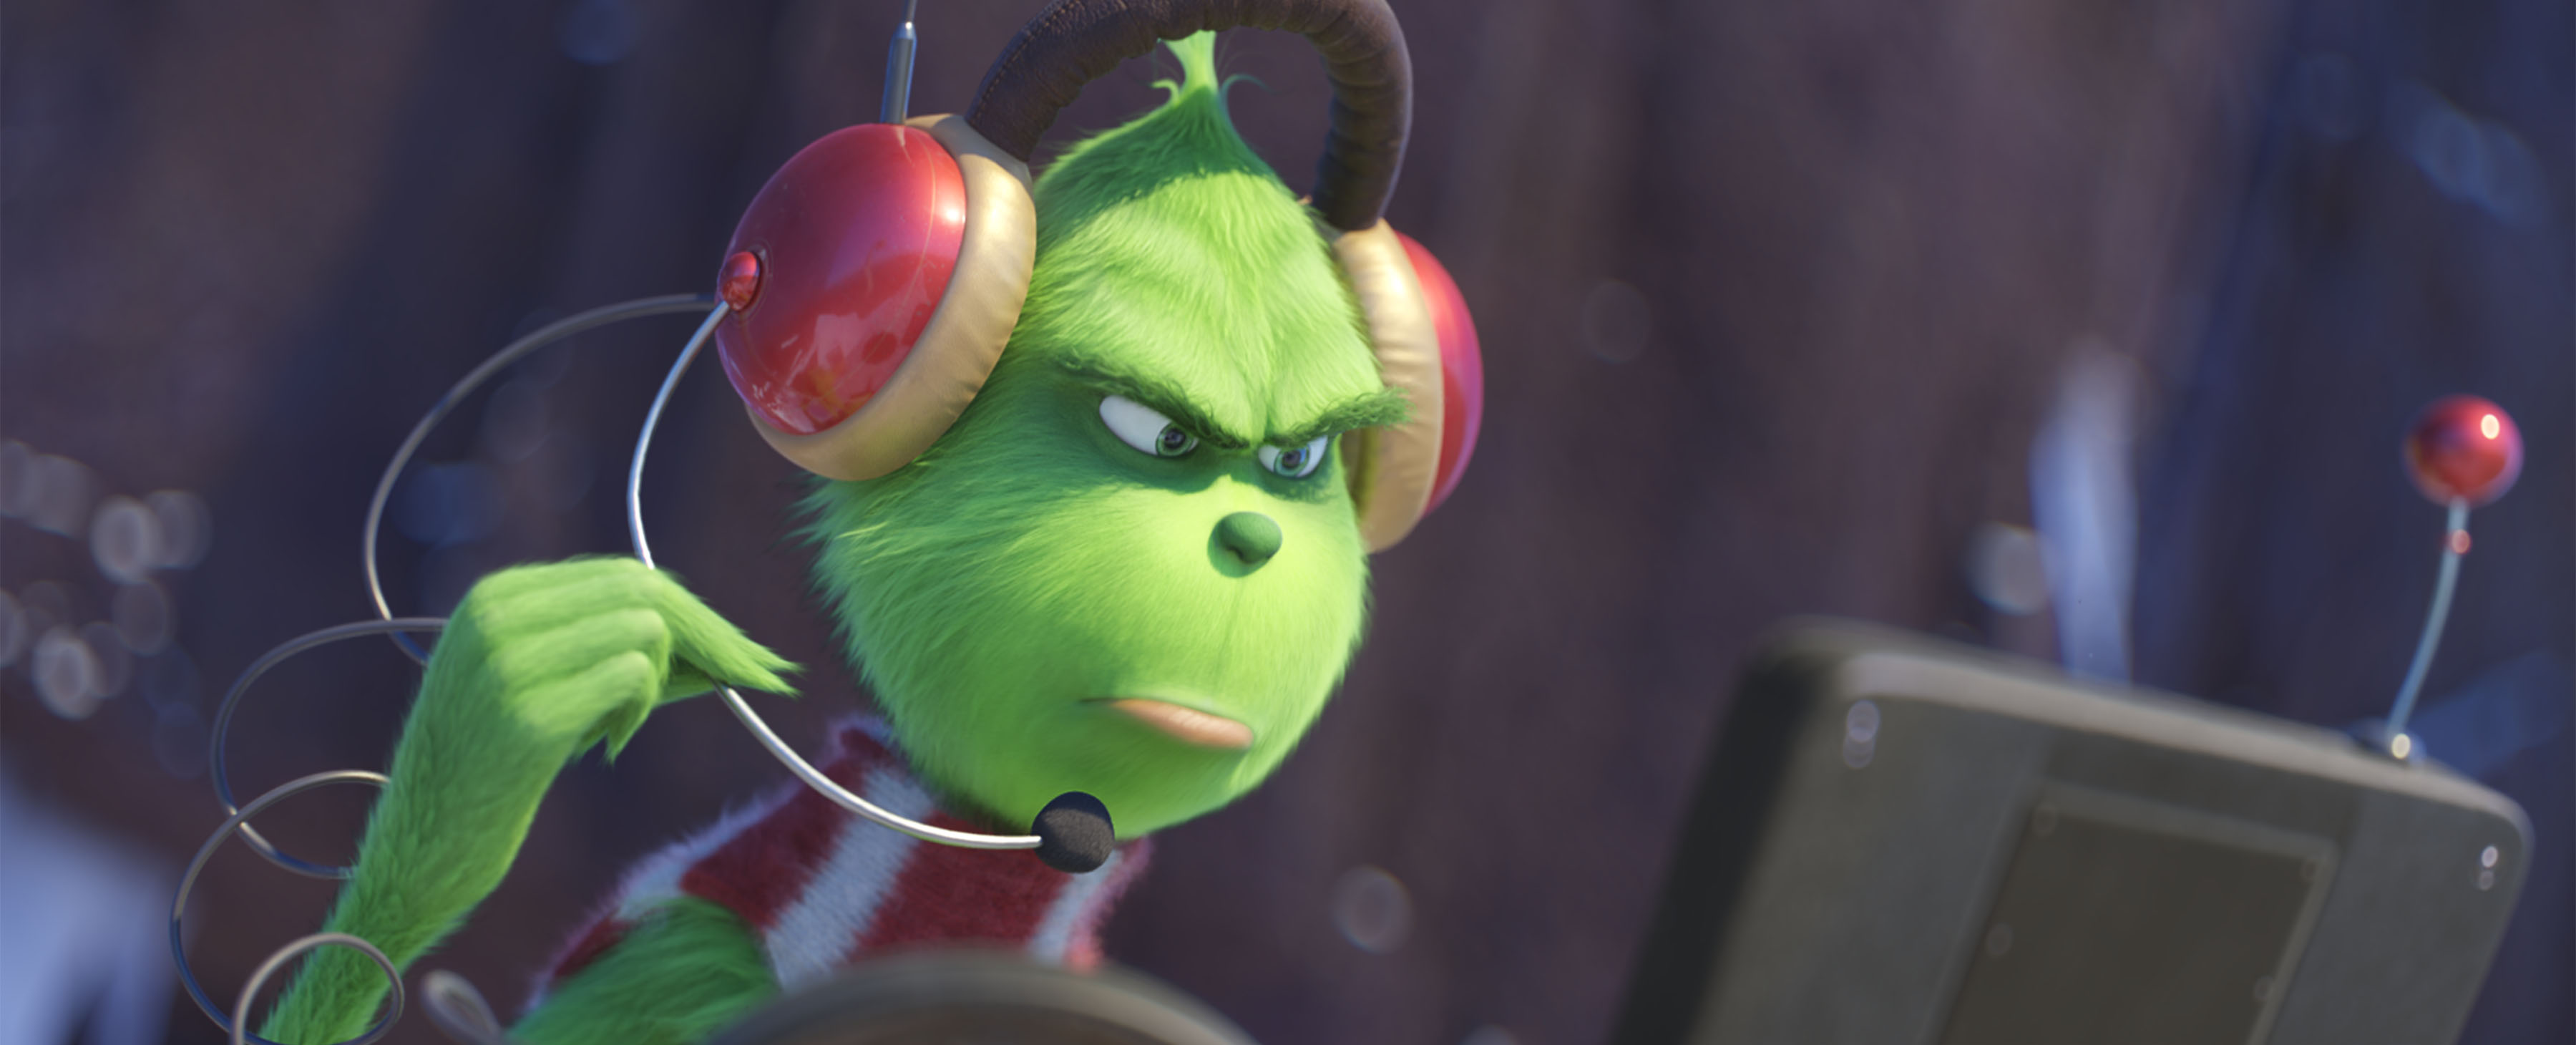 The Grinch Movie Official Trailer